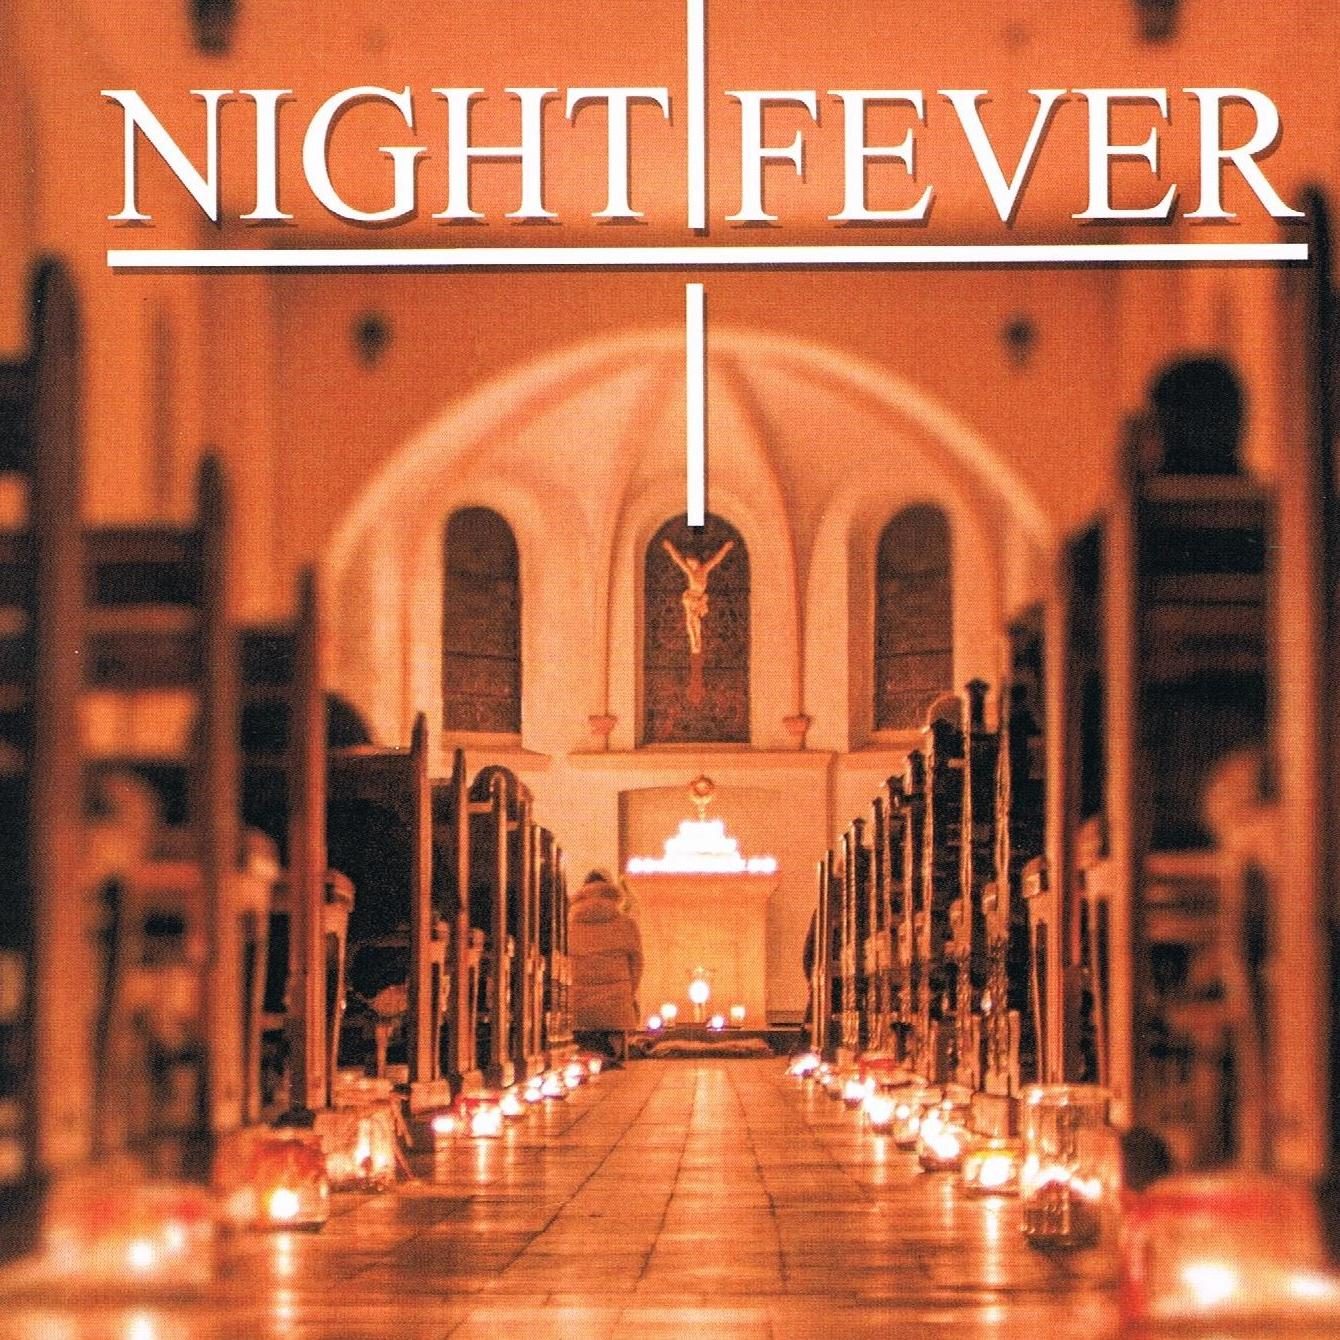 Night-fever (c) Richard Günnewig